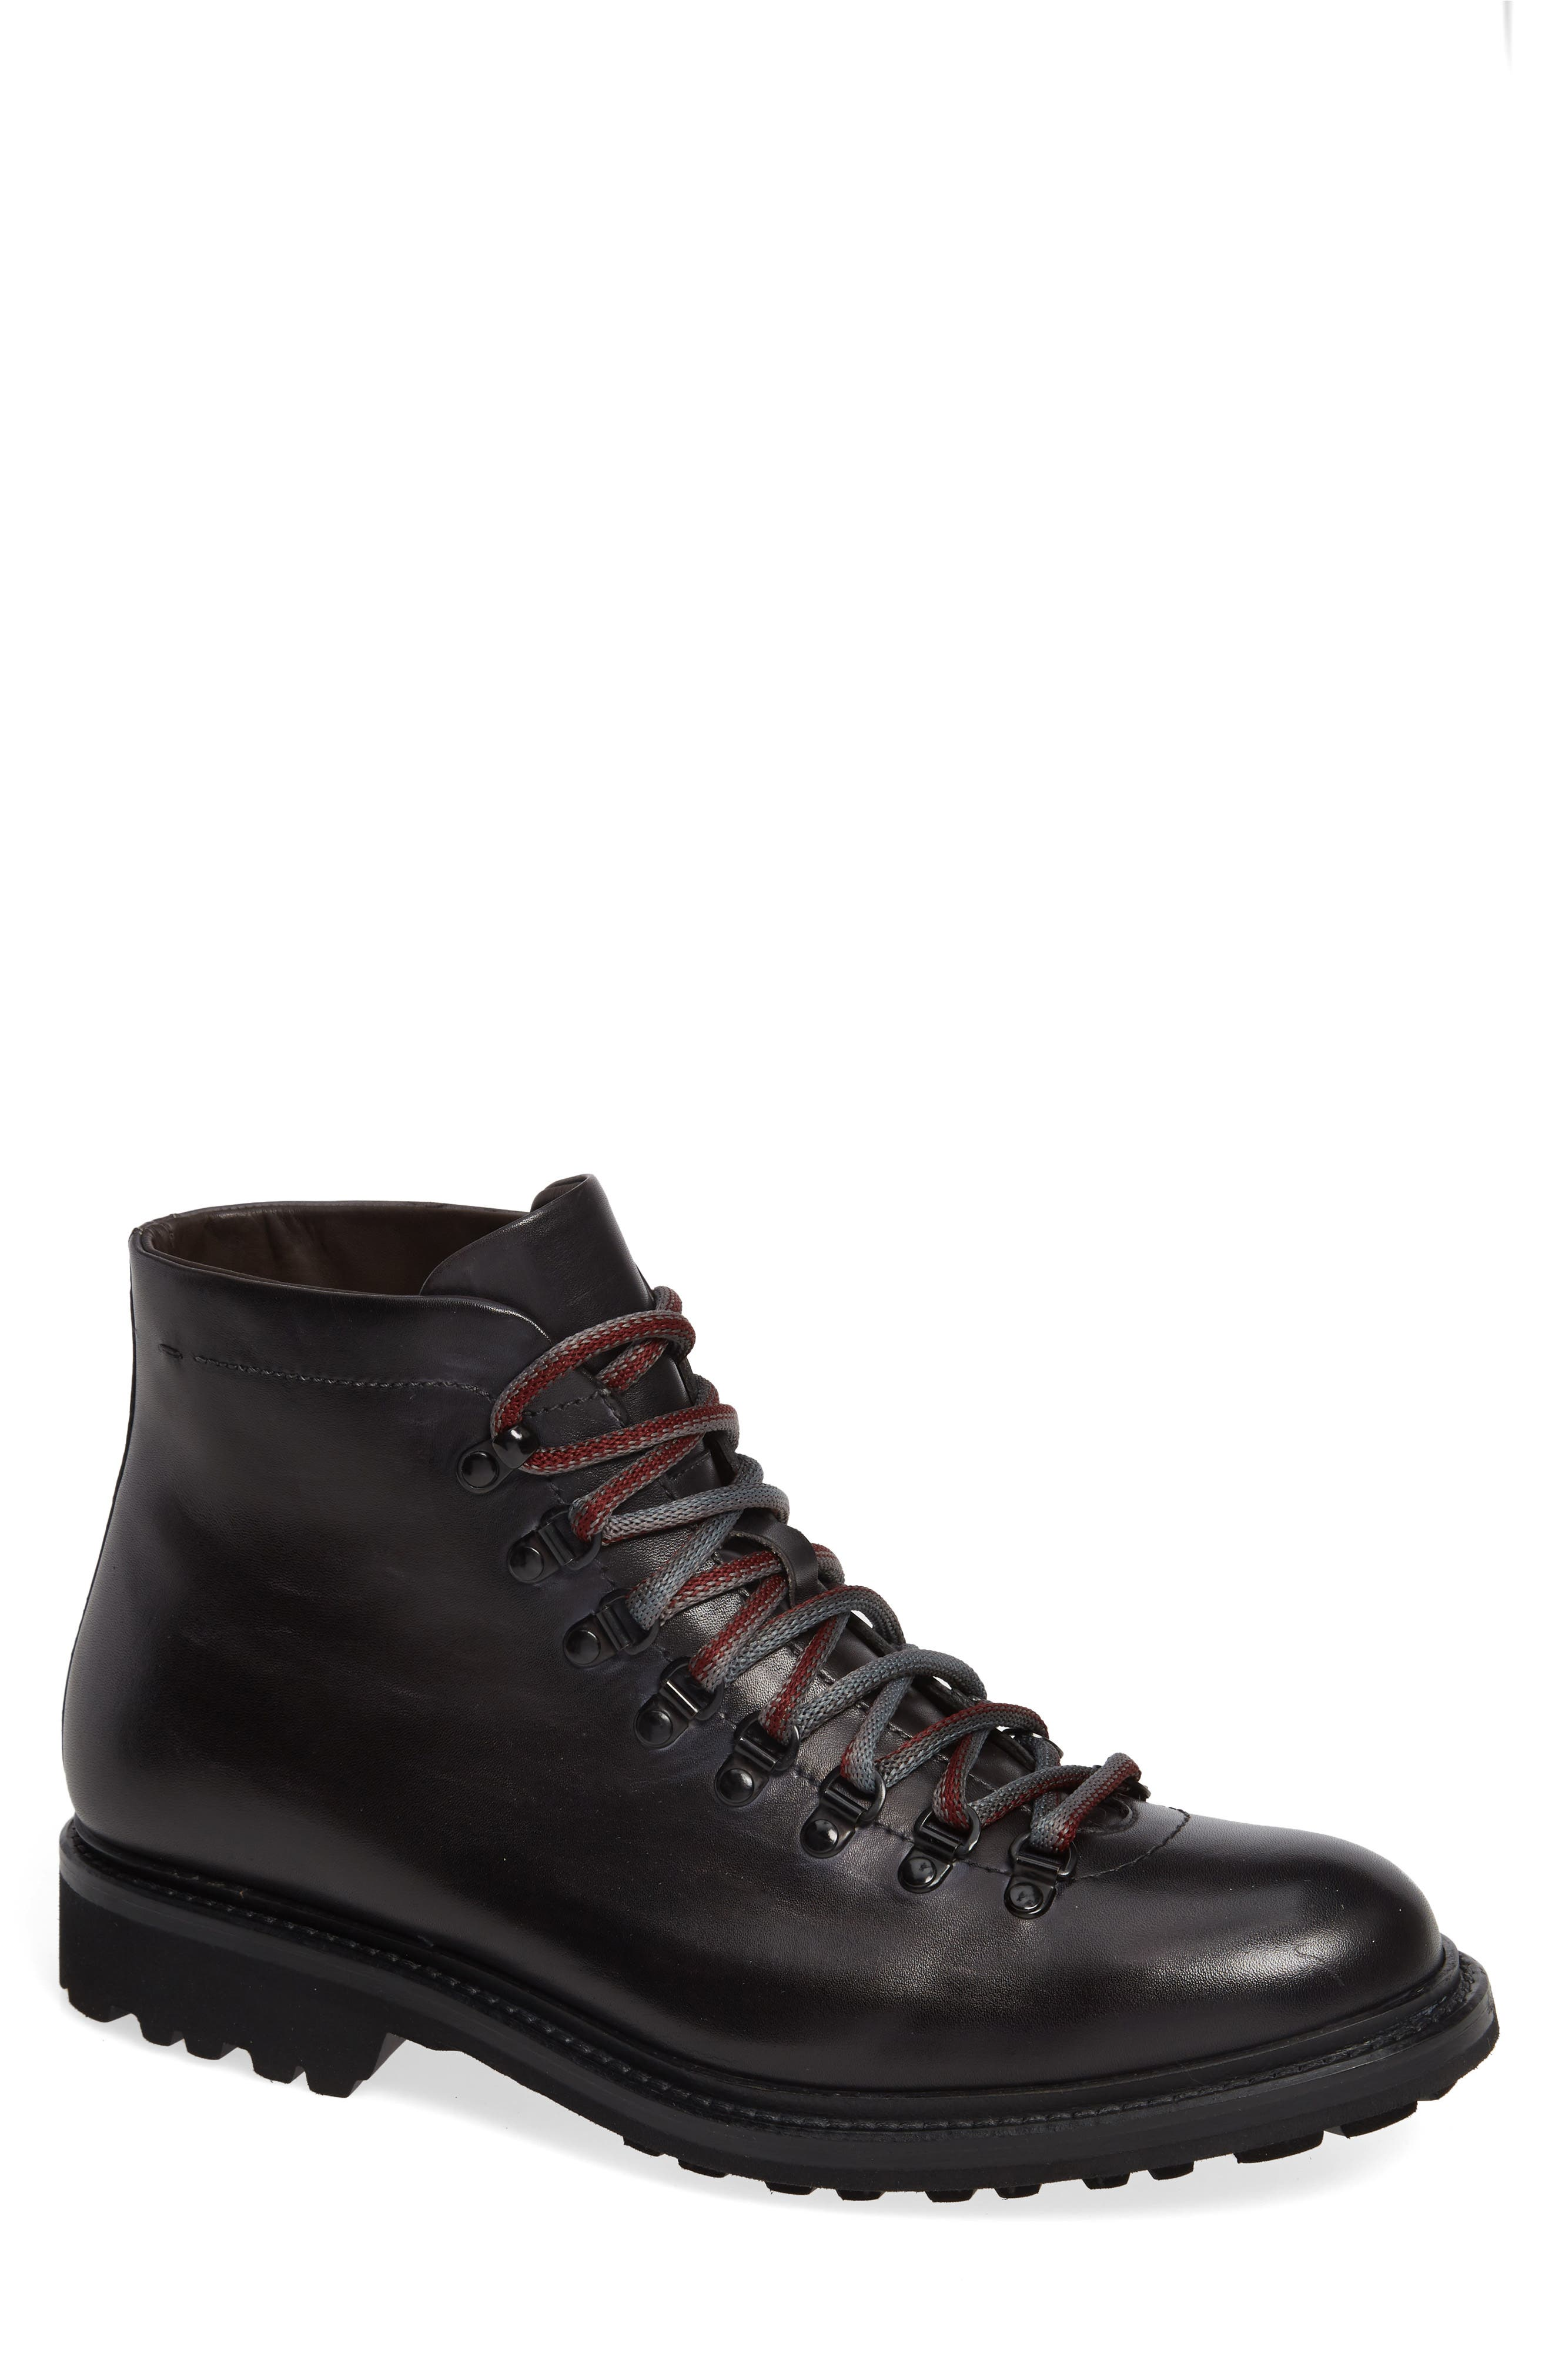 Montana Water Resistant Hiking Boot,                         Main,                         color, 020